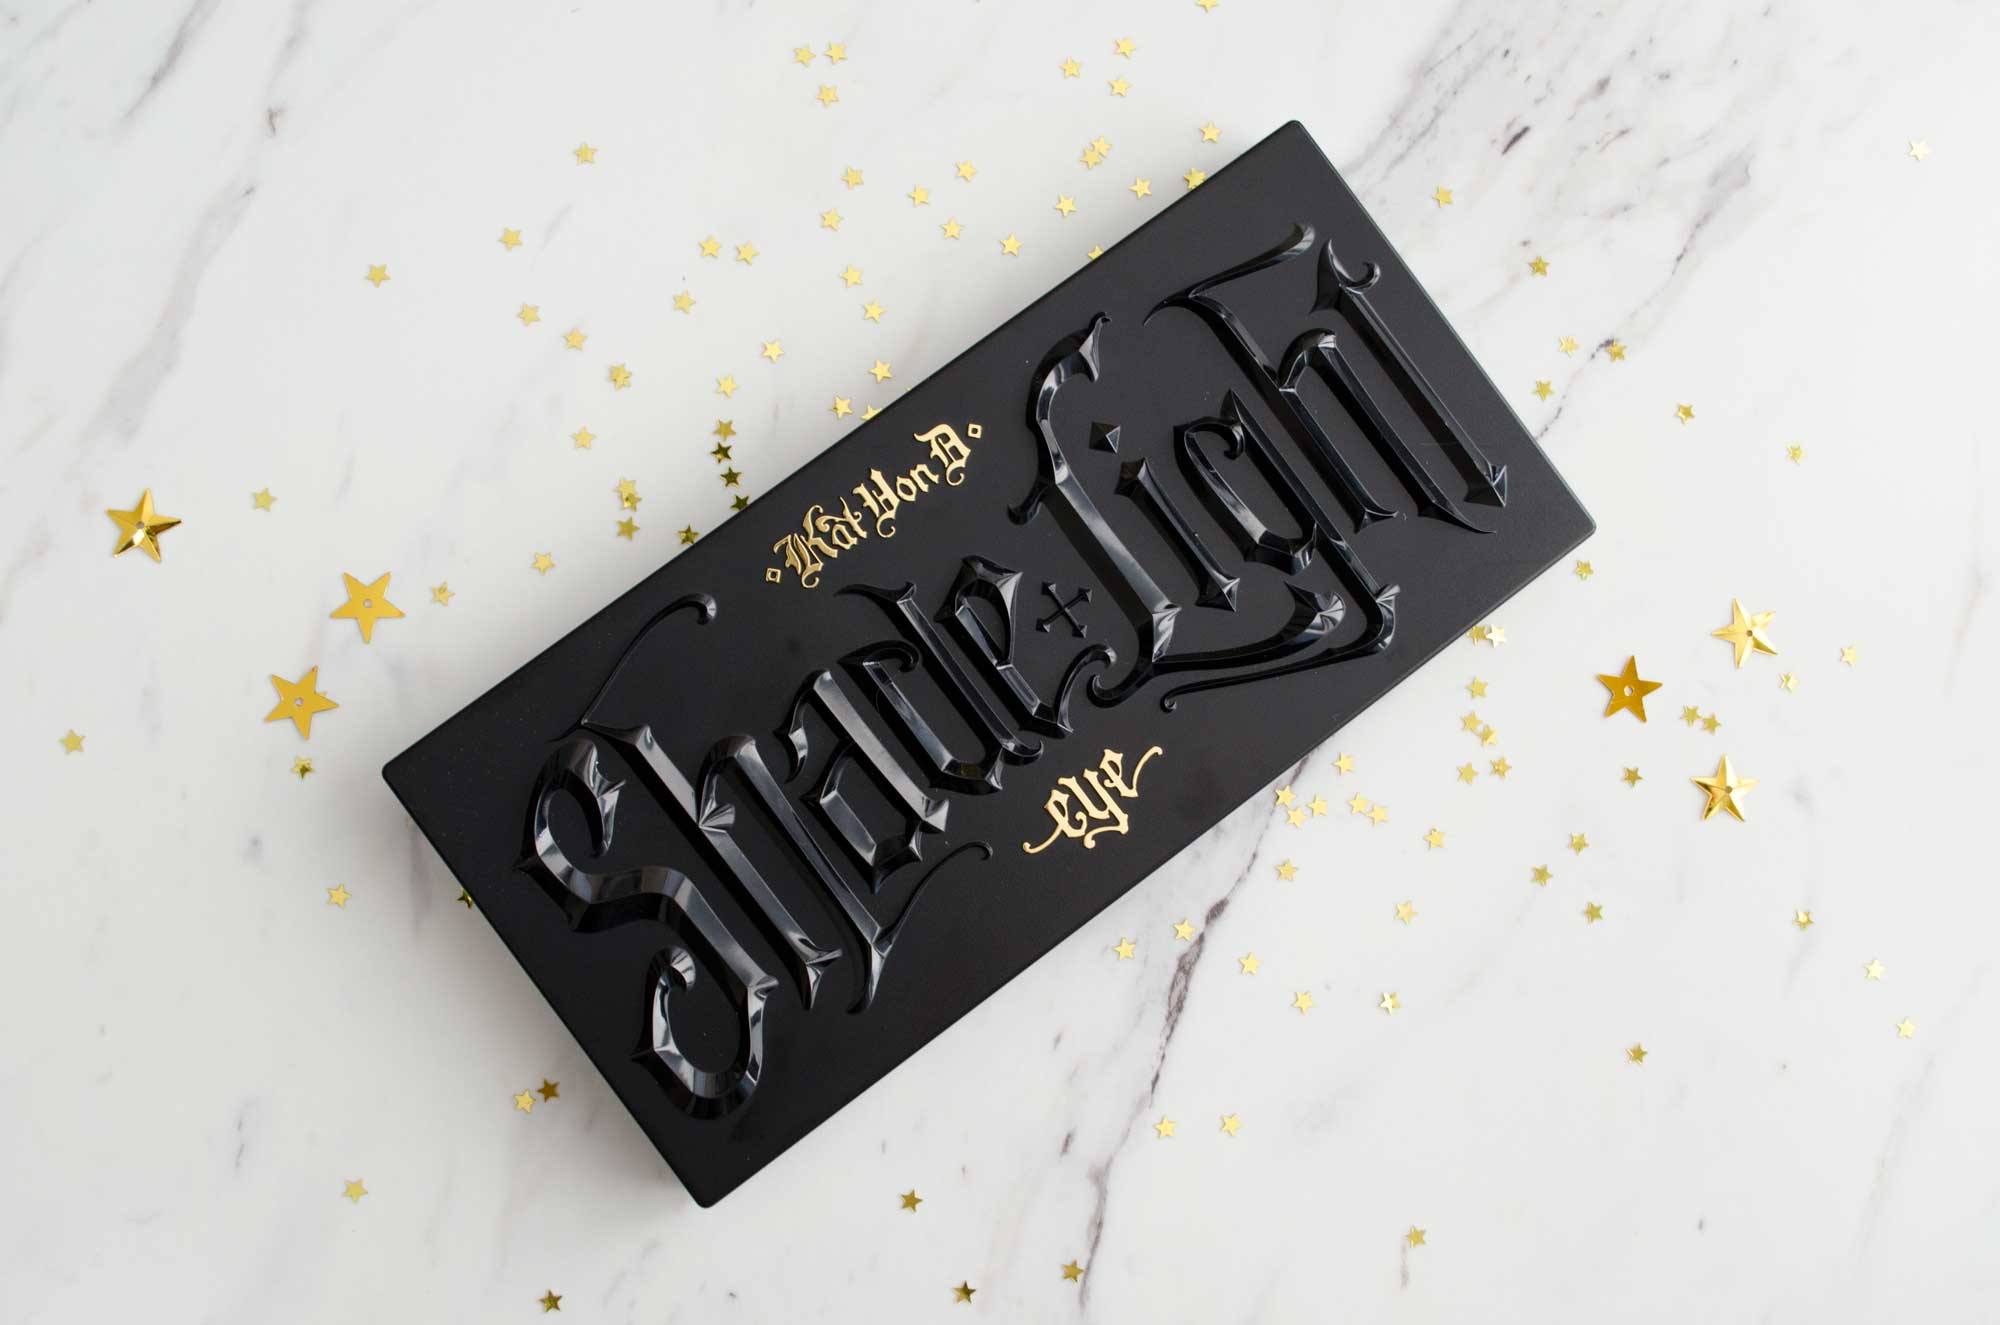 kat von d shade and light palette outside packaging